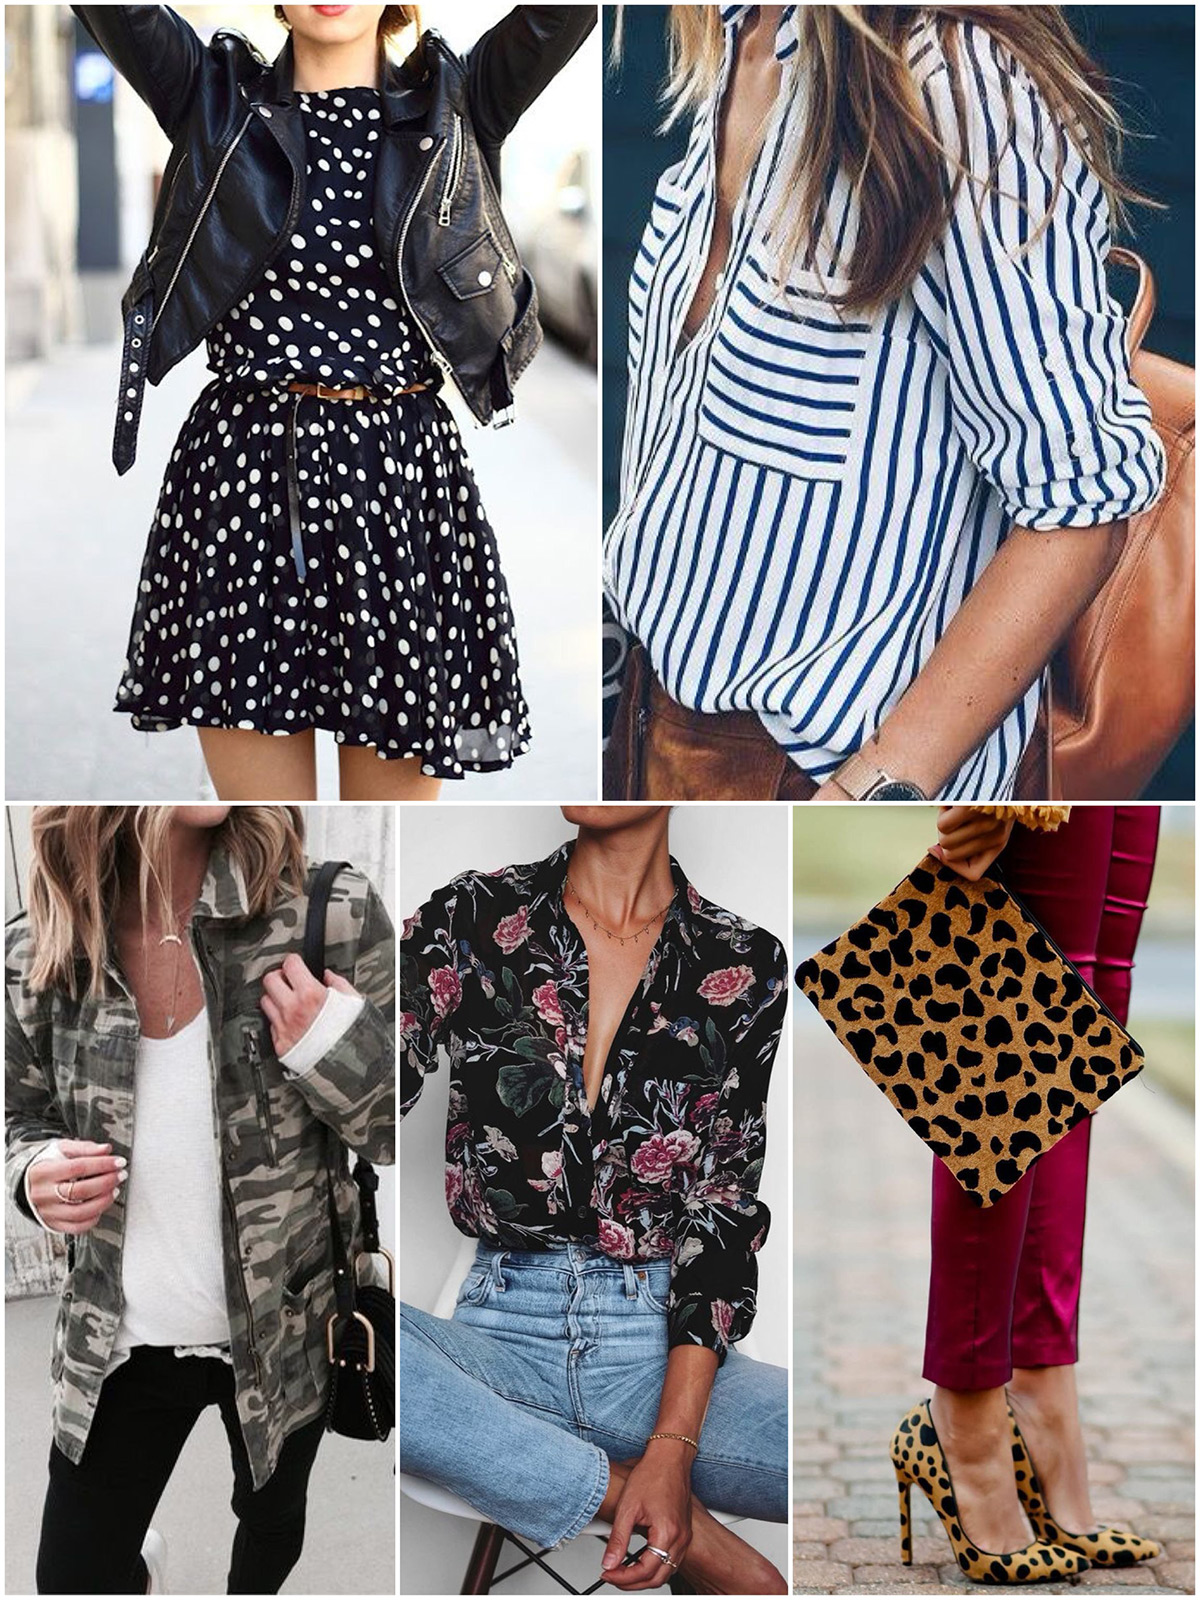 Tops 10 style resolutions as chosen by the experts | 10 simple, effective things you can do to start the new year with a positive attitude and a ton of self confidence. Style yourself slim, shop consciously, how to, wear colour, wear print, wardrobe foundations, shop vintage, shopping tips, style advice, style hack, top tips, solutions